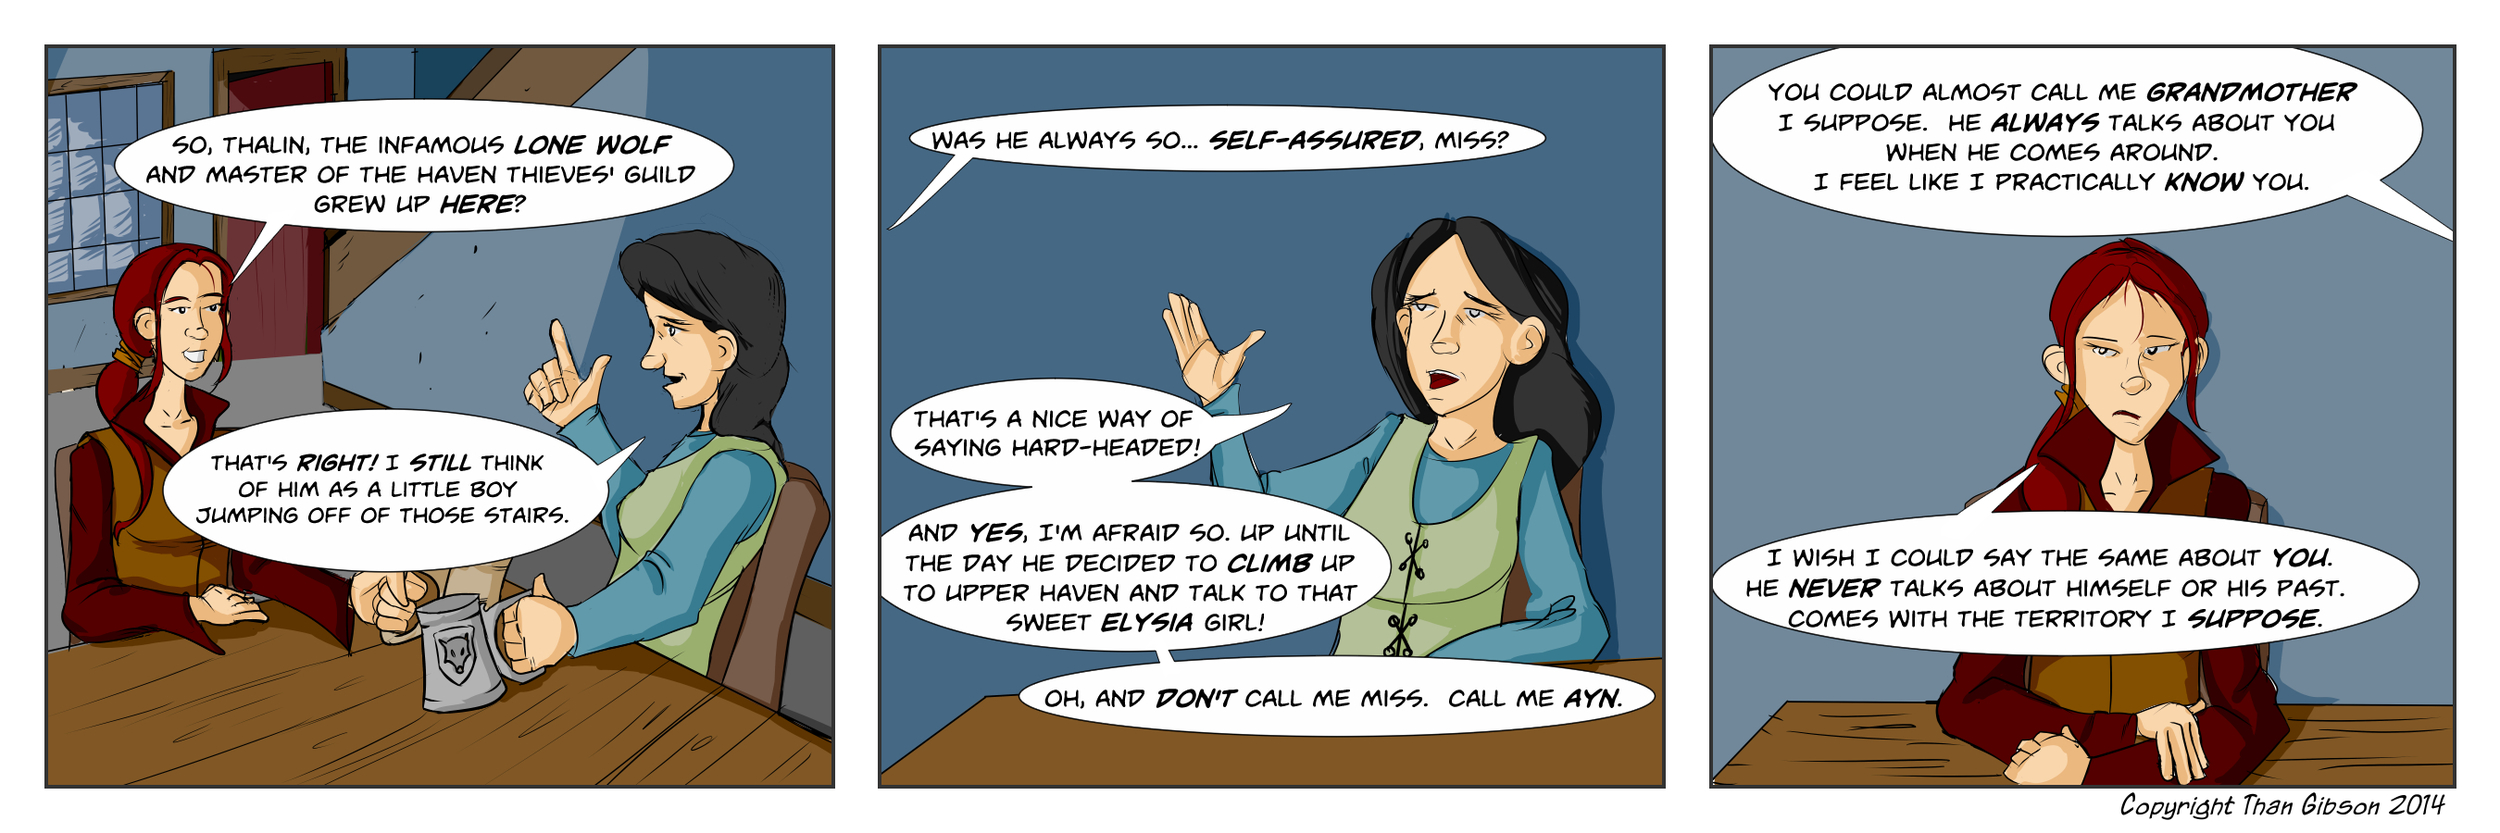 Strip 26 - Click the image for a larger view!